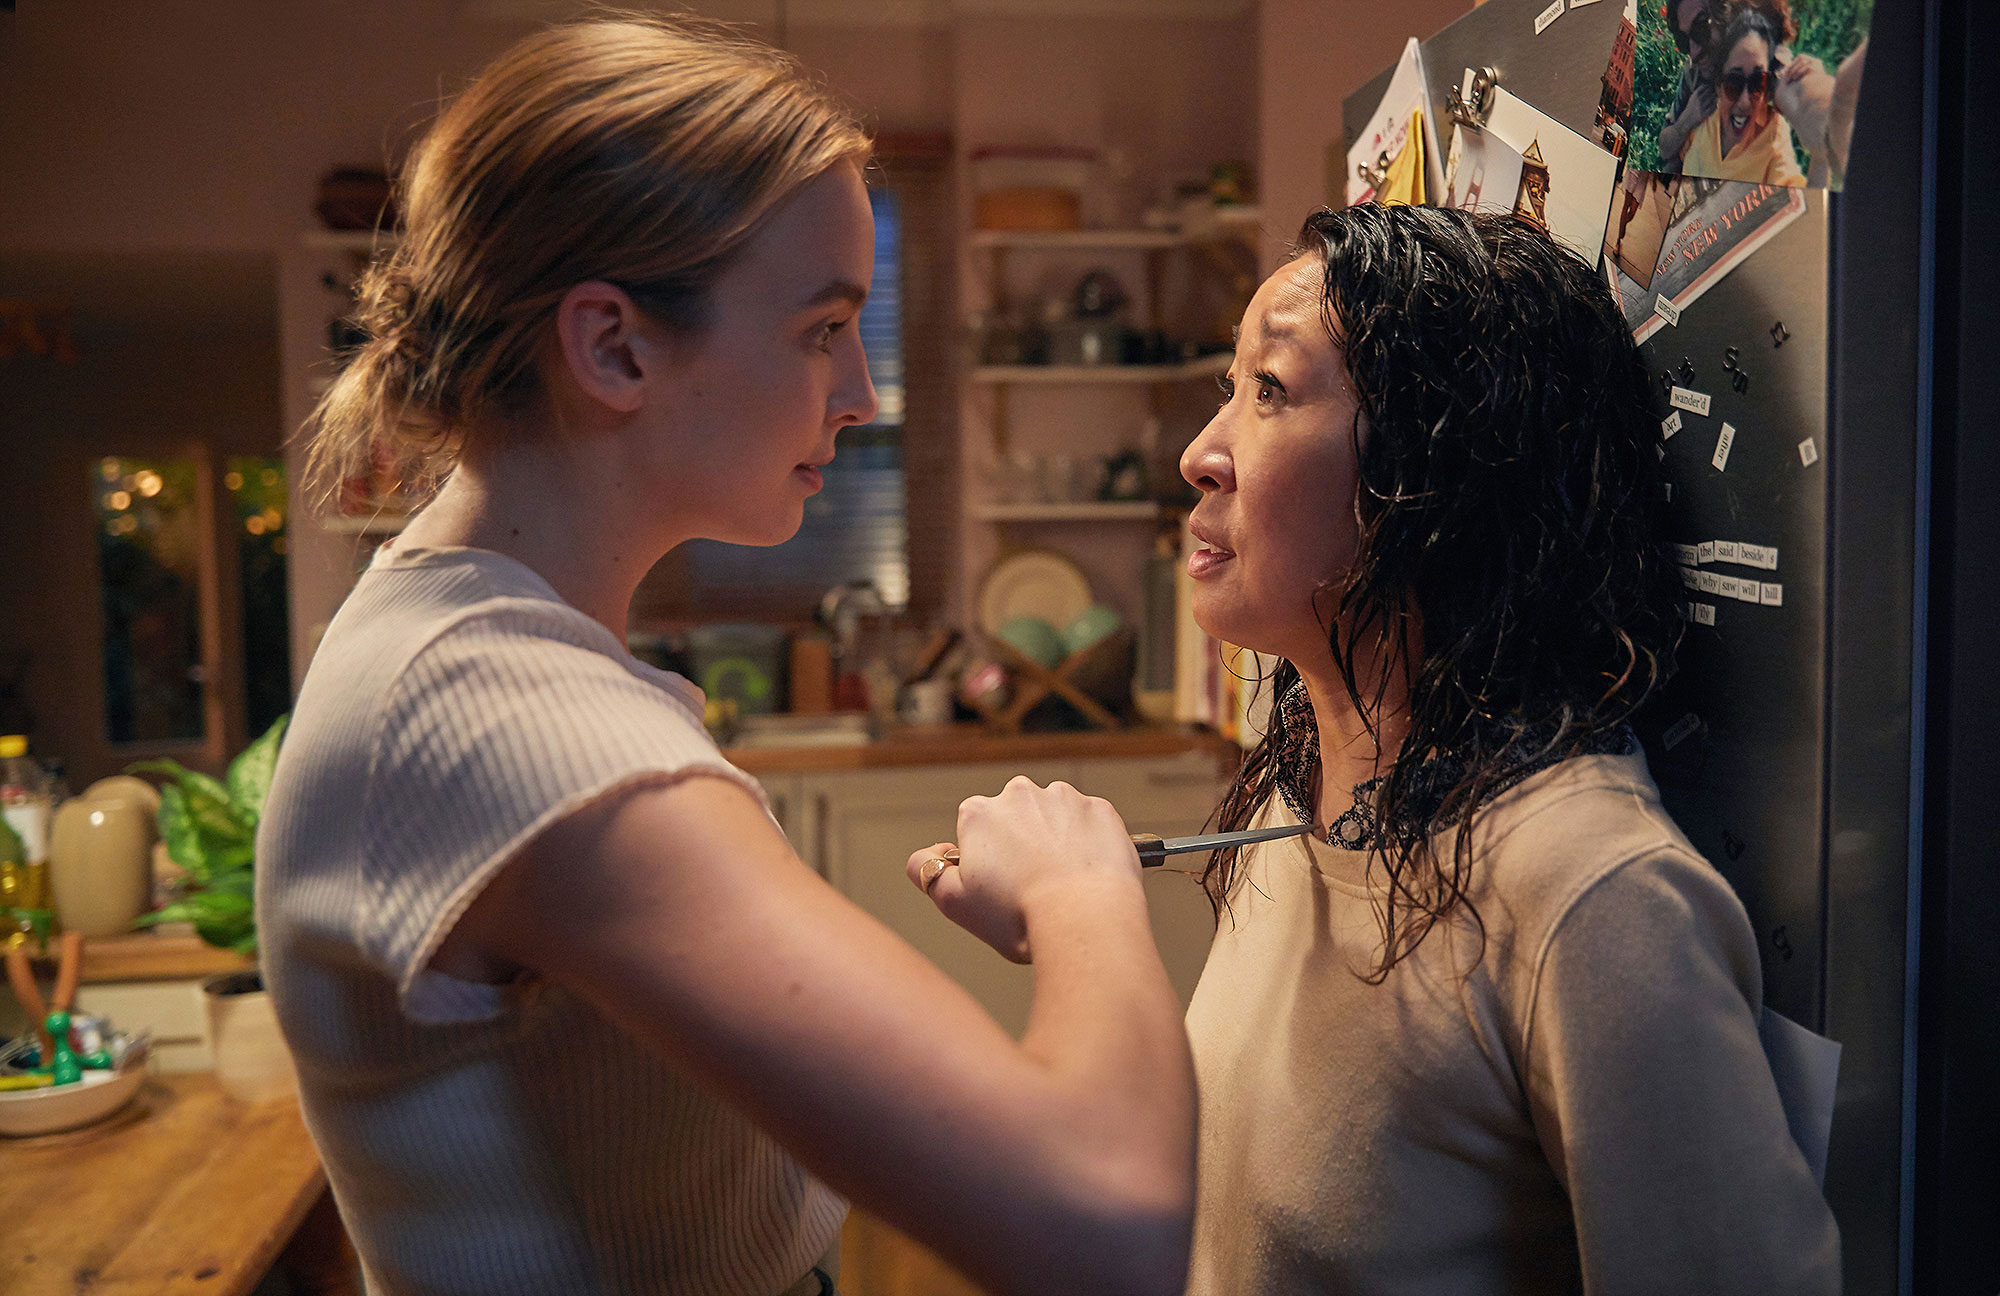 Killing Eve - After killing it at the Globes ( Sandra Oh took home best actress!), the BBC America hit returns for its sophomore season, picking up 30 seconds after we last saw Sandra's Eve and Jodie Comer 's Villanelle. Eve is desperate to find out what happened to Villanelle (who she stabbed at the end of season 1), and she's not the only one searching for the hit woman.